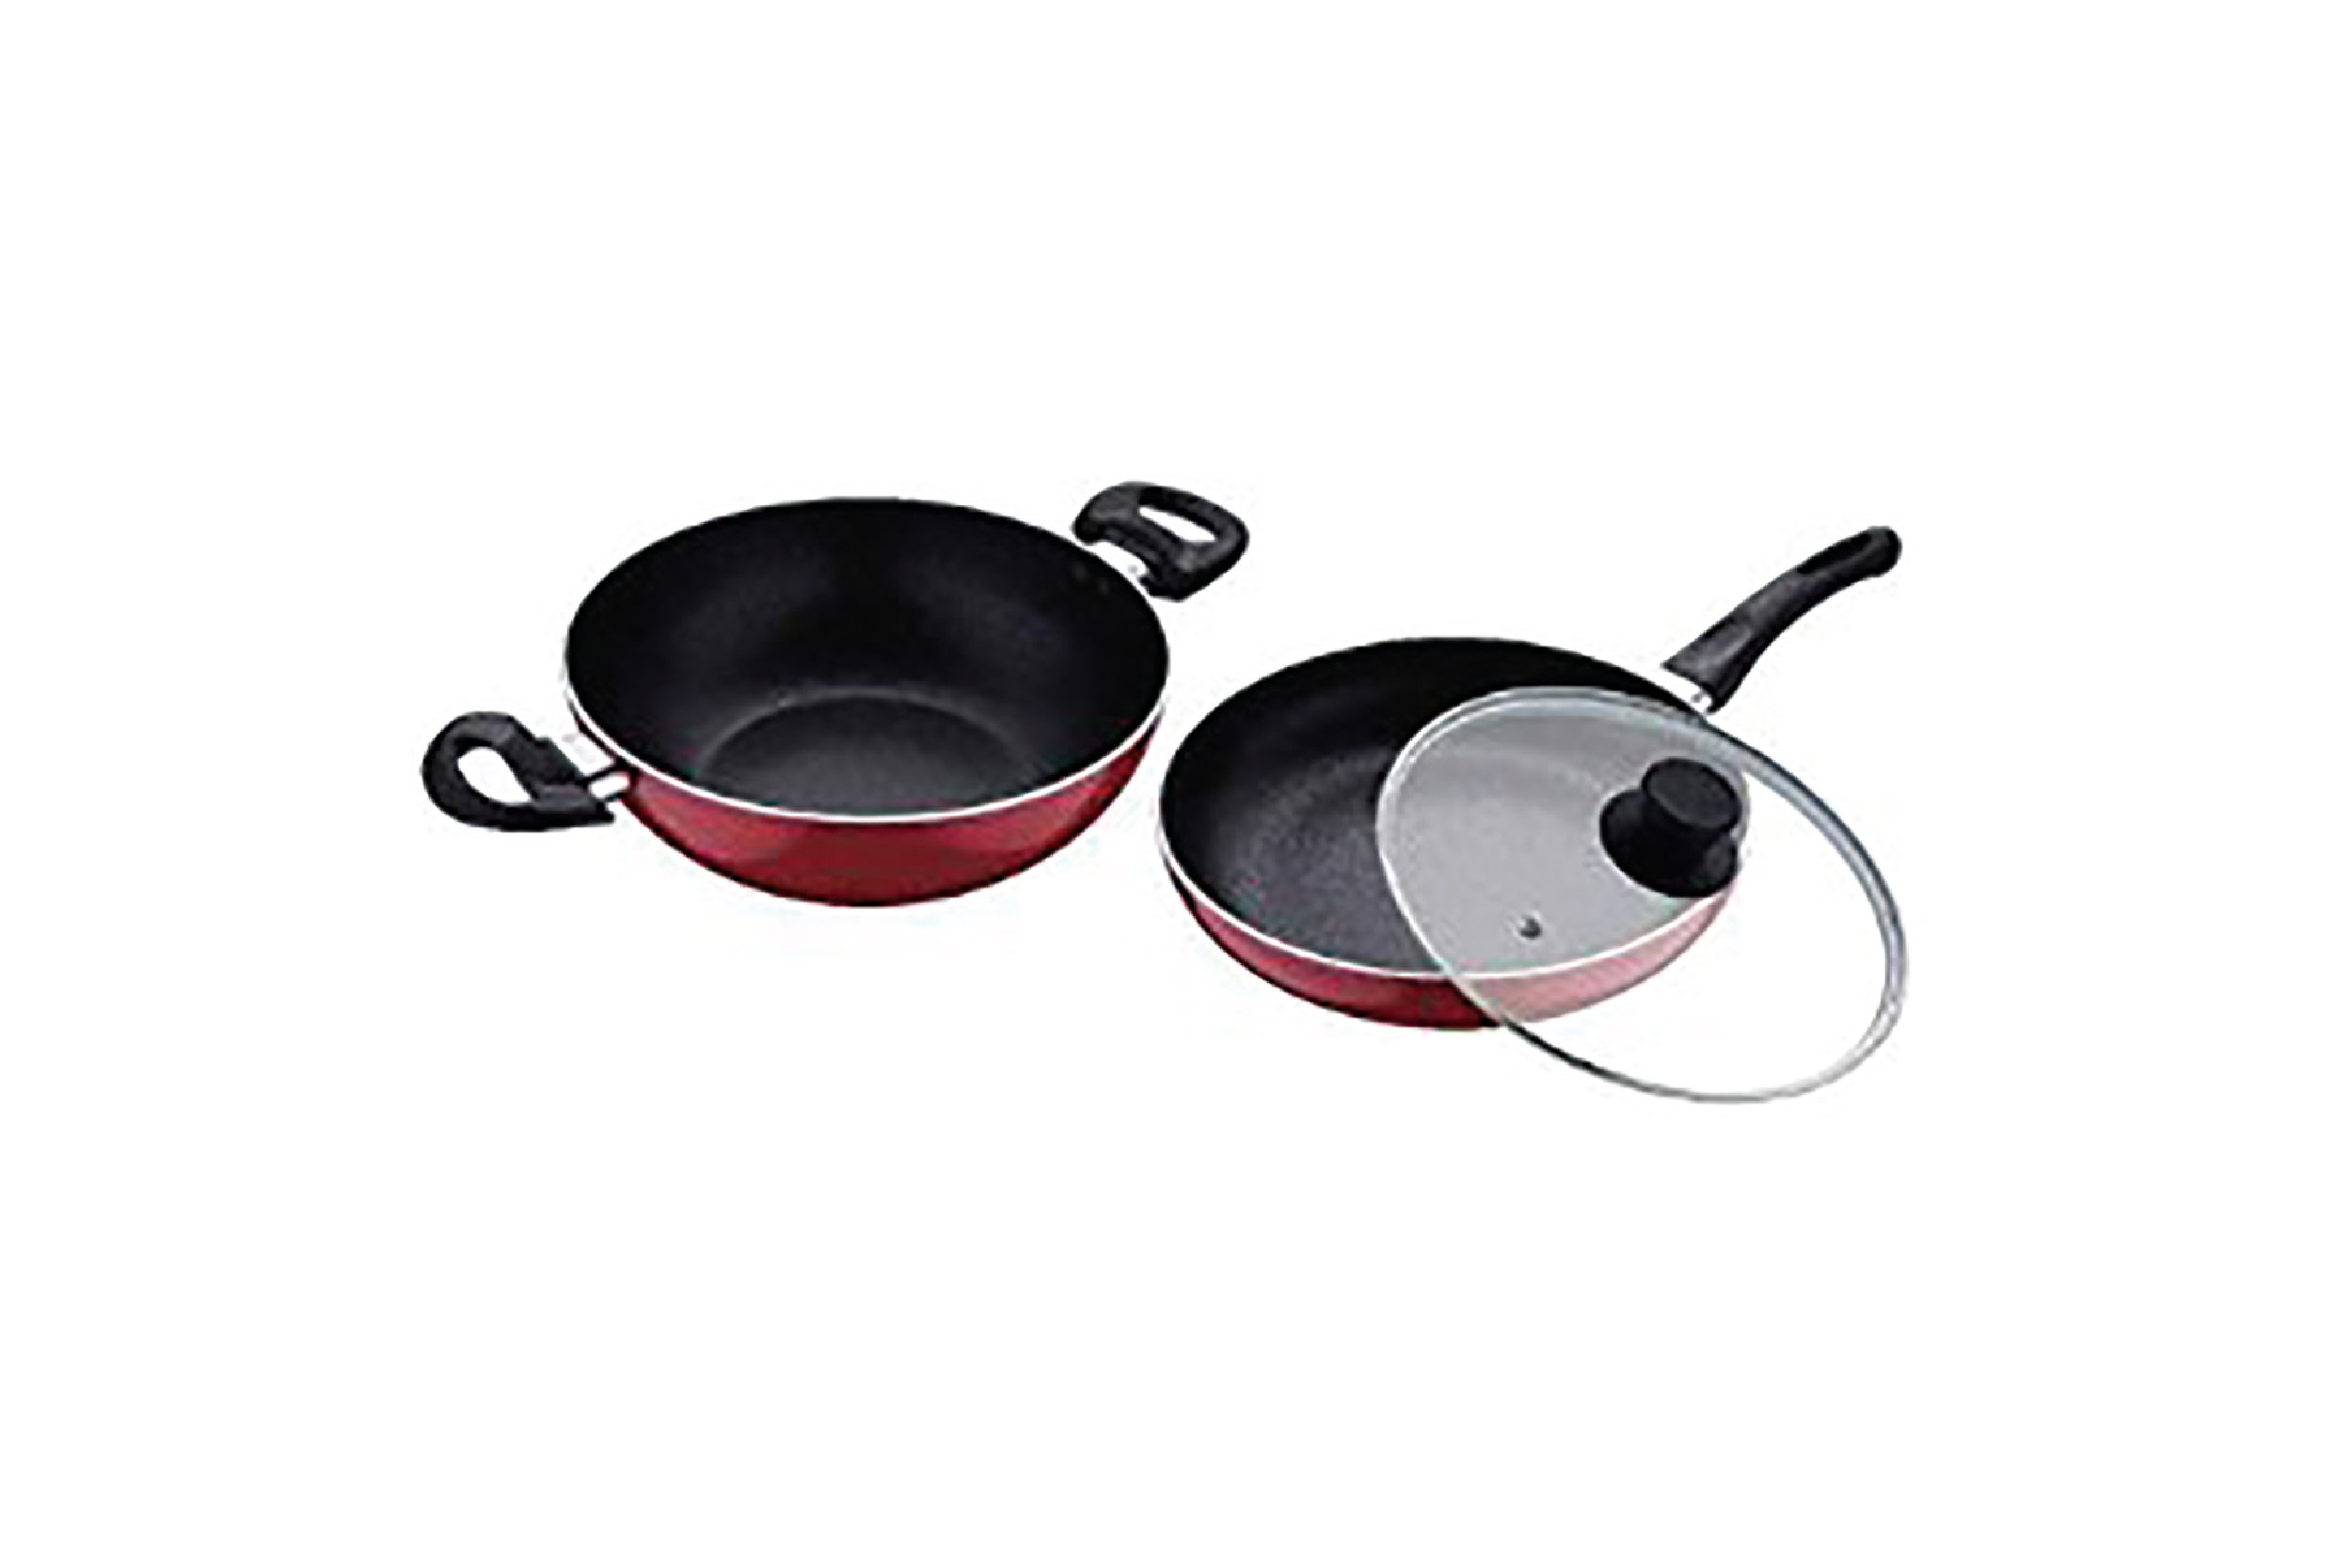 Bergner-Renger Press Aluminum Non-Stick 3 PCs Cookware Set RB 1481